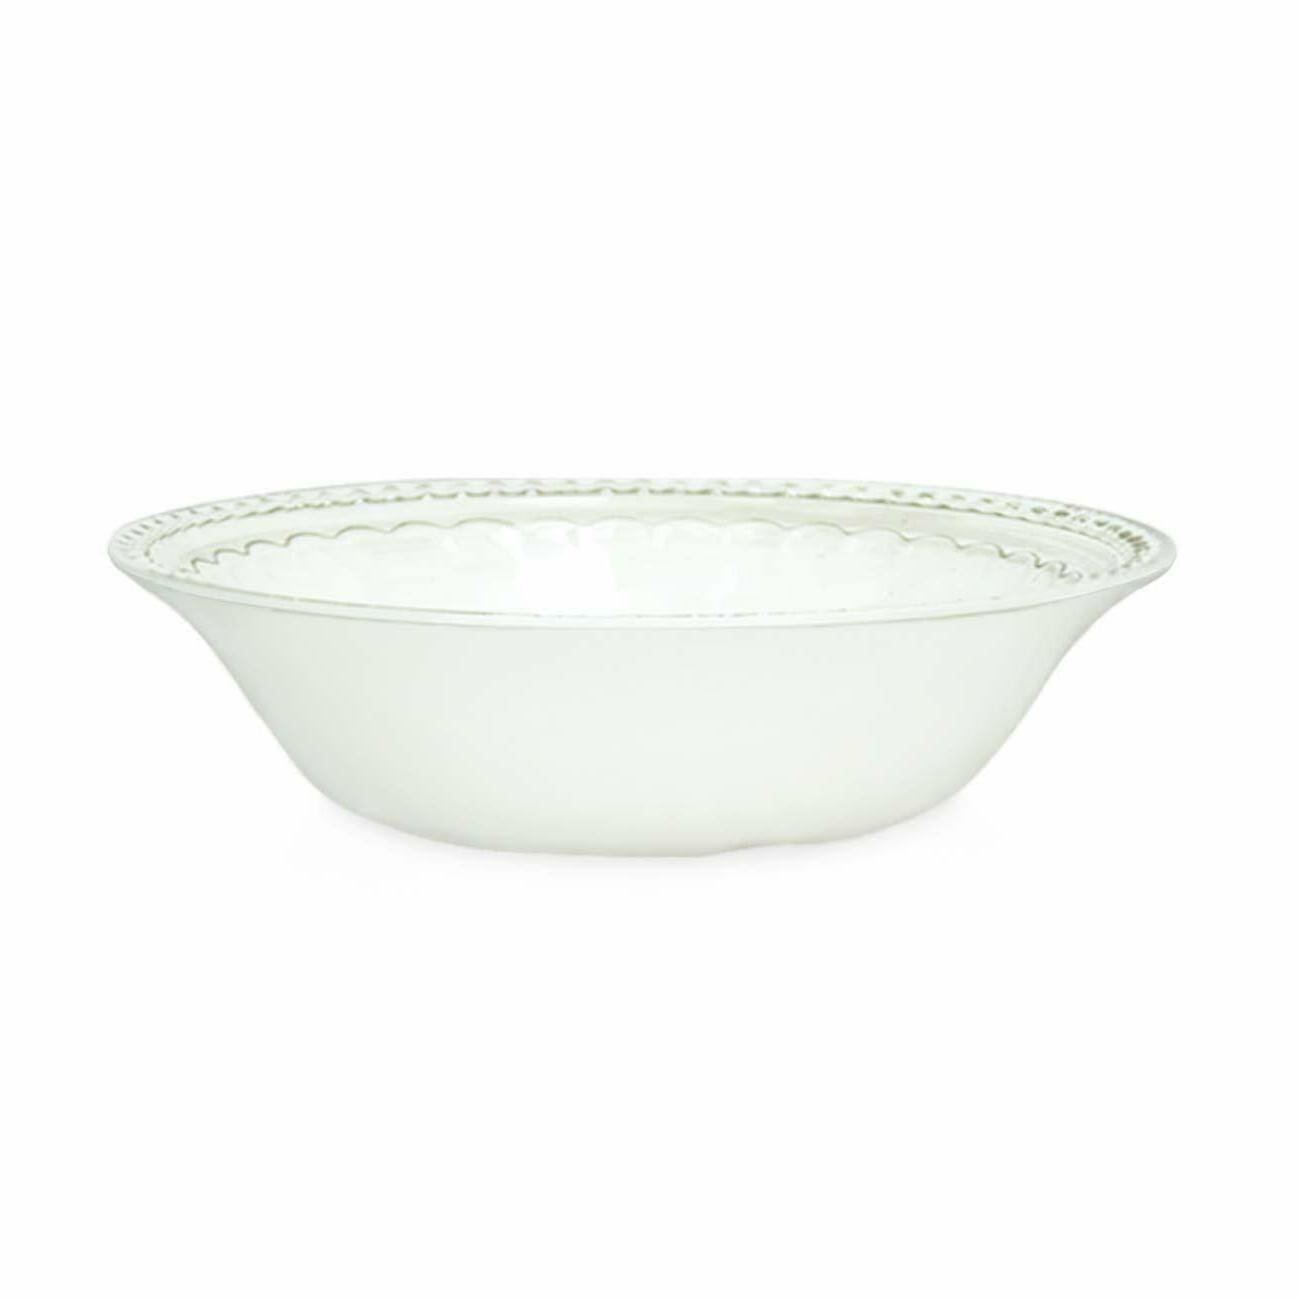 Zak! French Country House Set Oyster